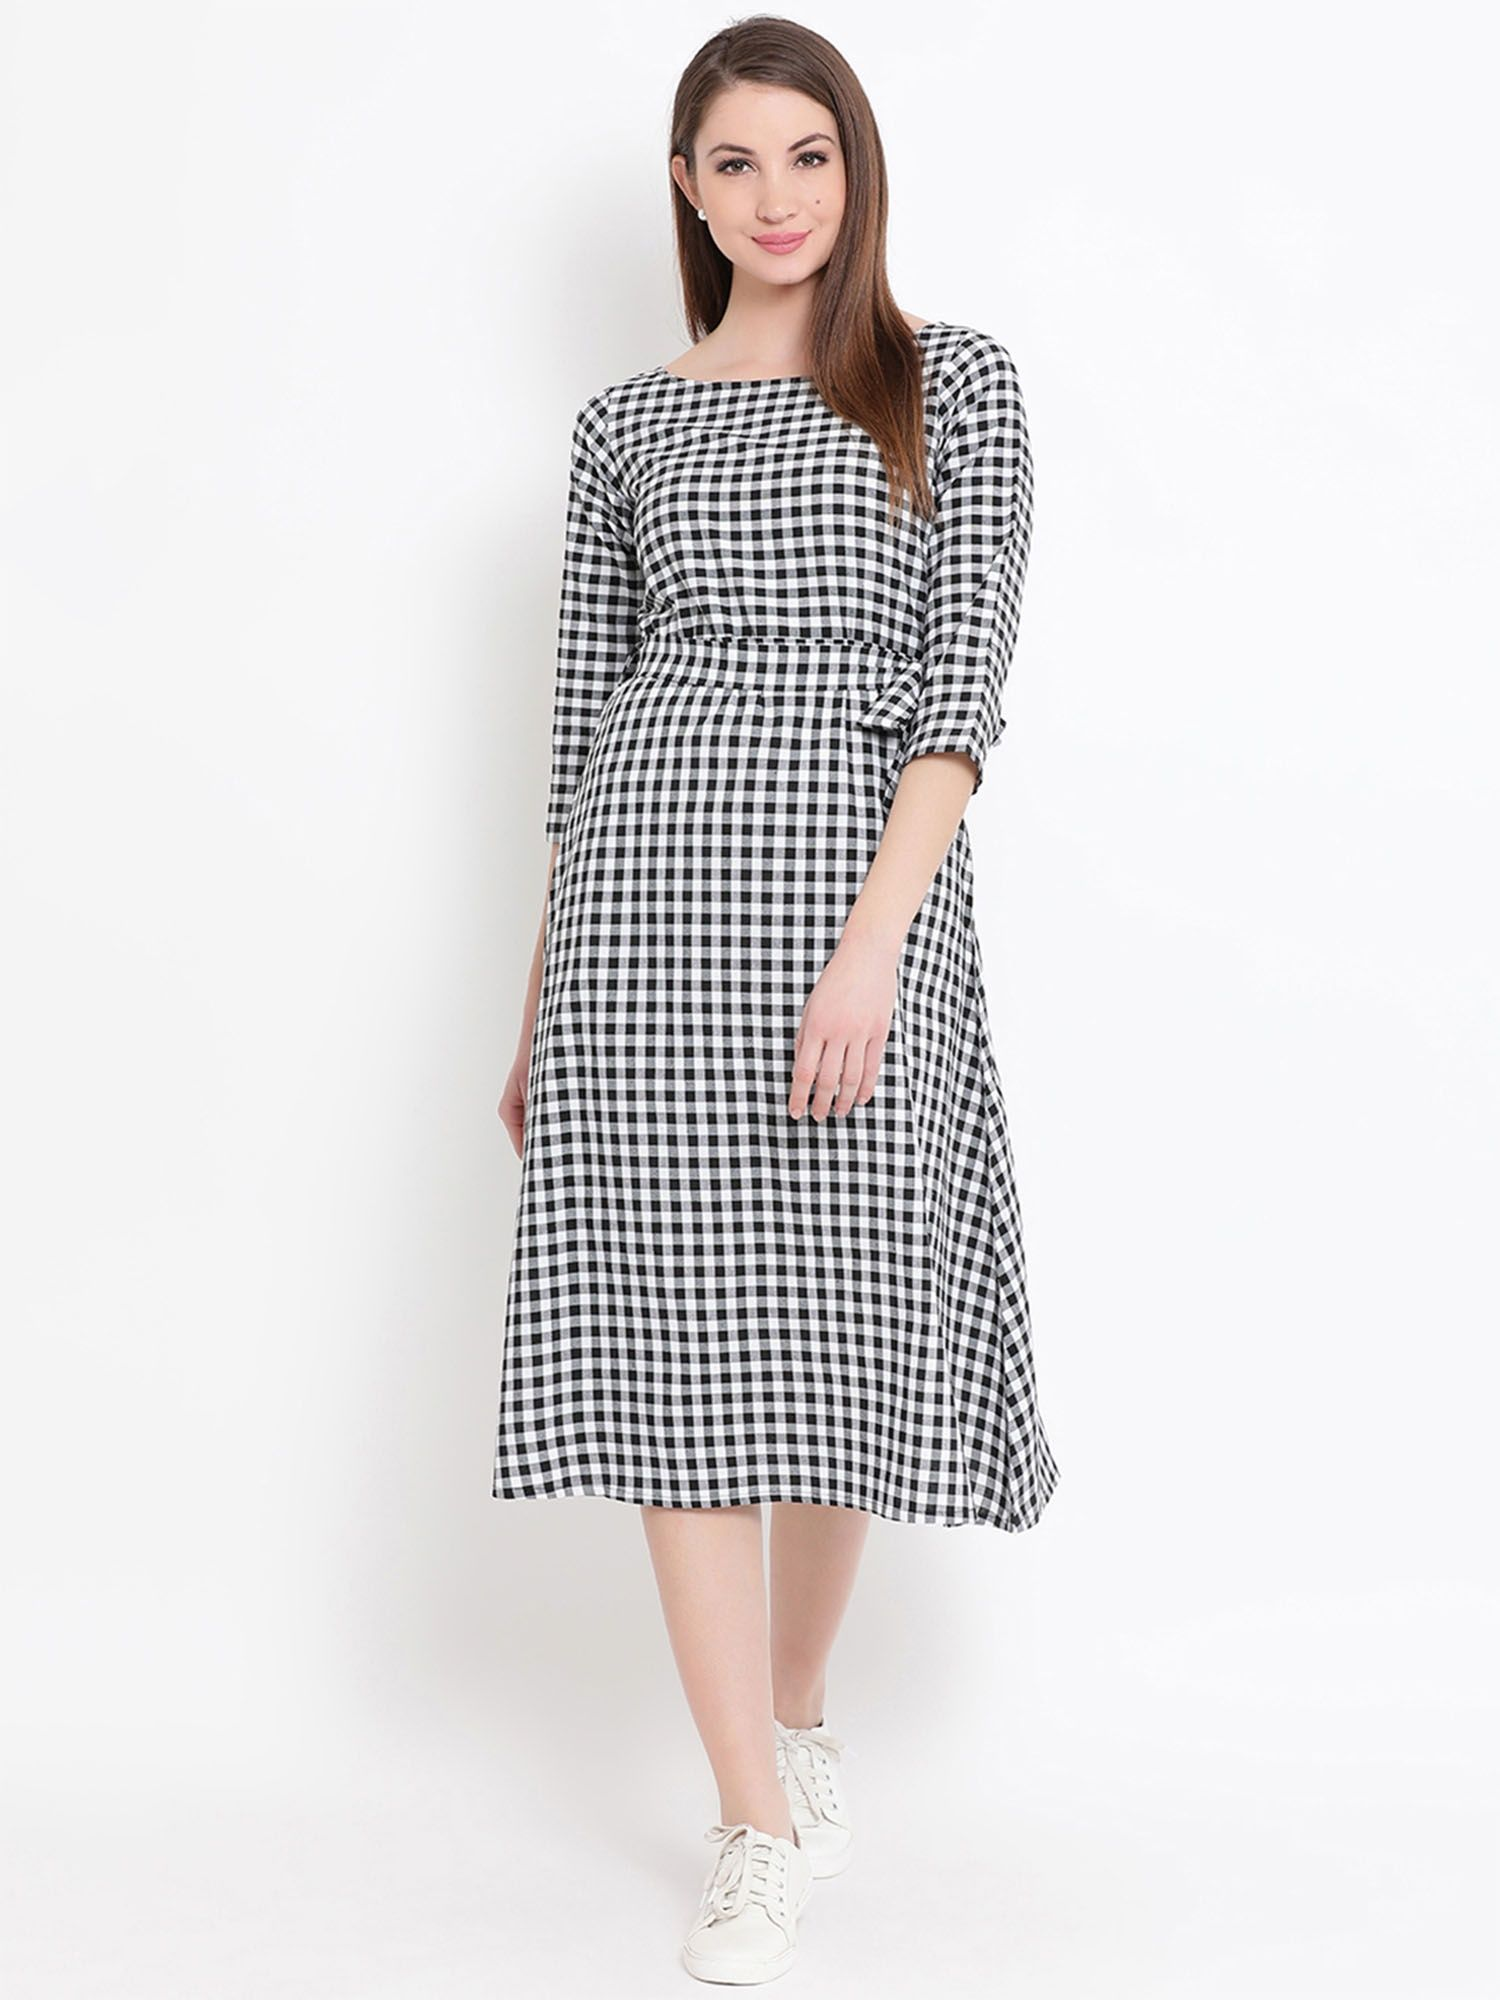 ac6957c878f Ladies Black And White Check Dress - Data Dynamic AG